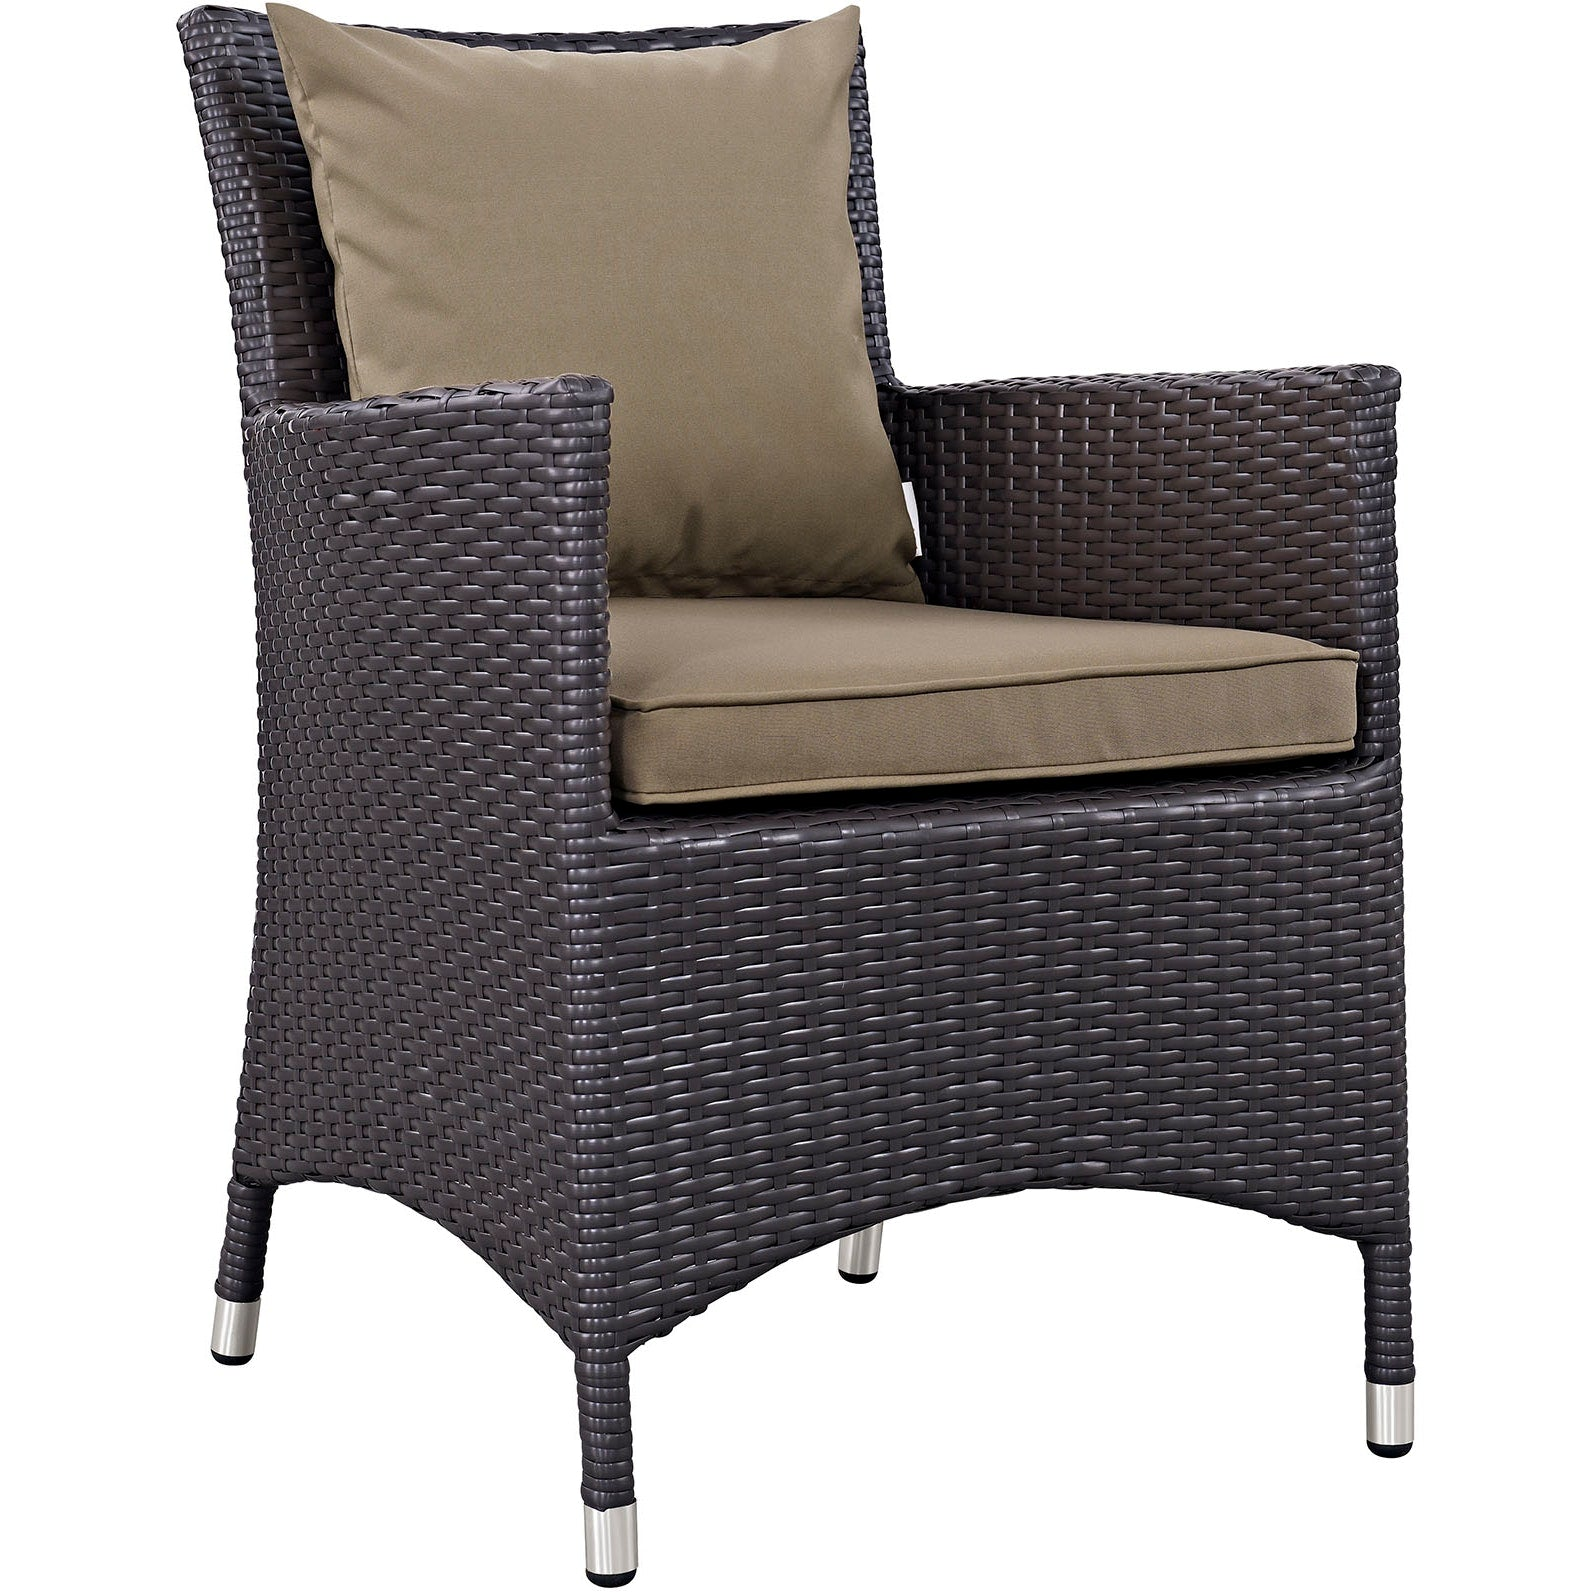 Convene 4 Piece Outdoor Patio Dining Set - Espresso Mocha